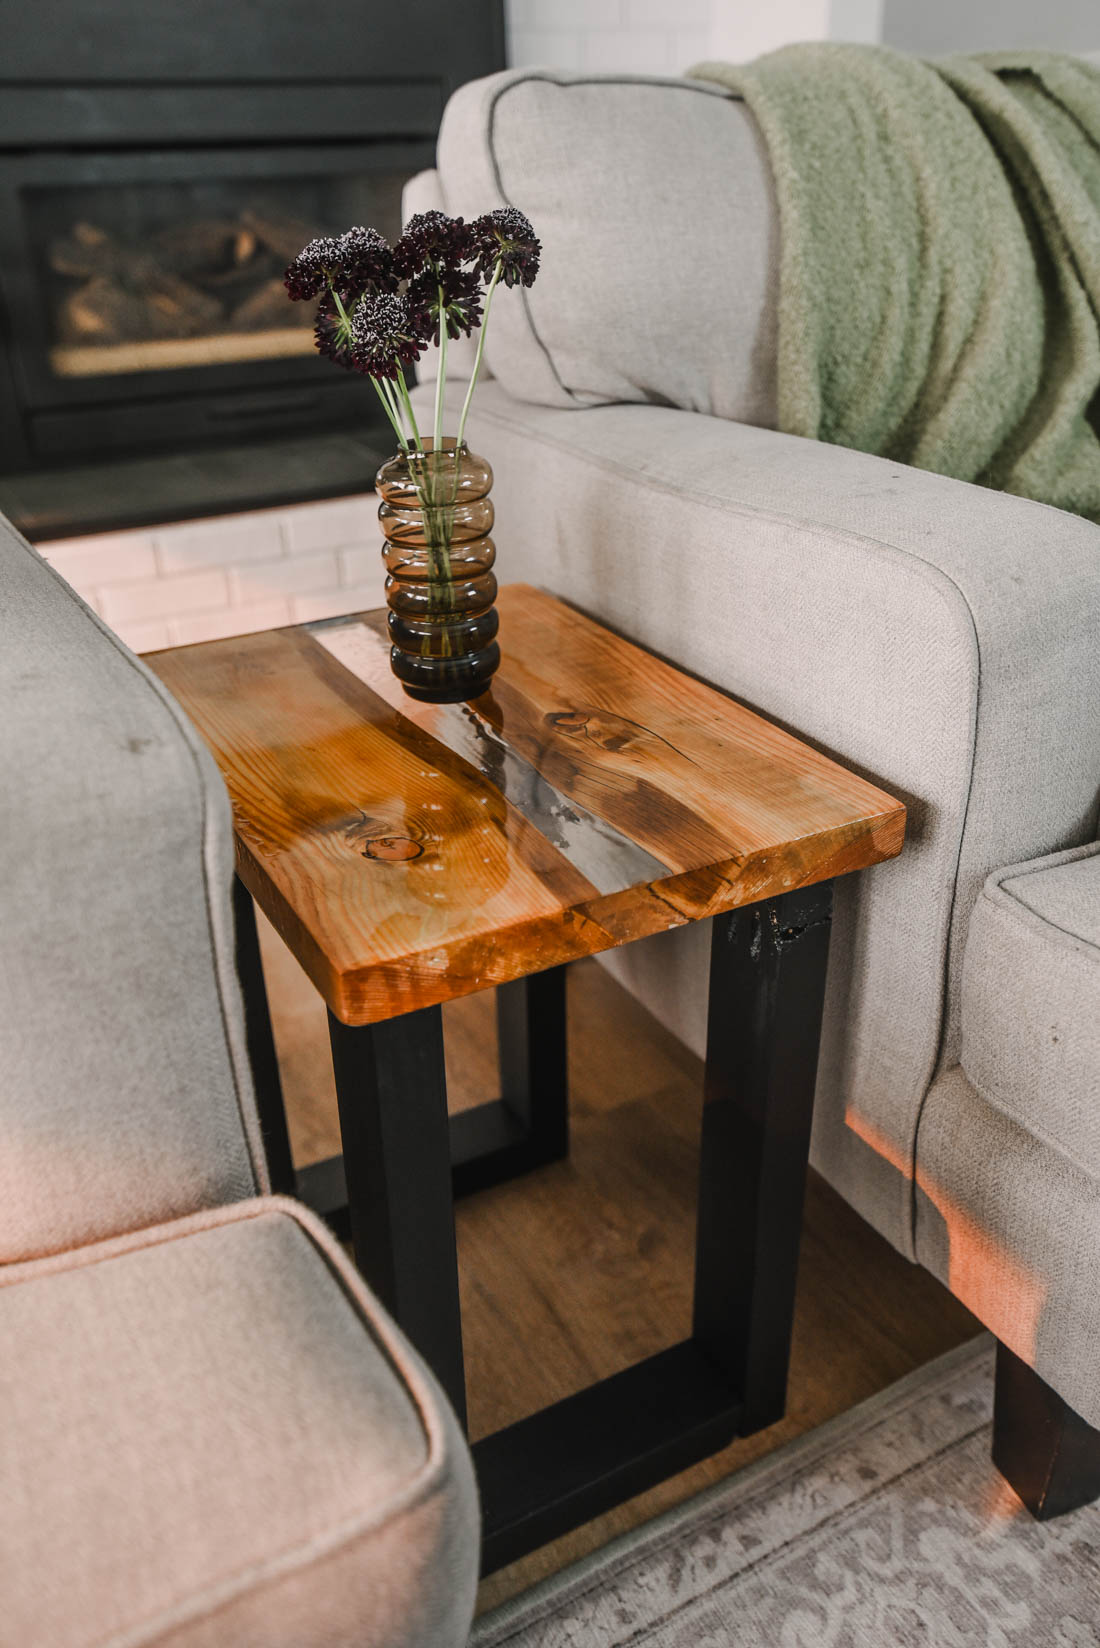 DIY Live Edge Table with Resin River